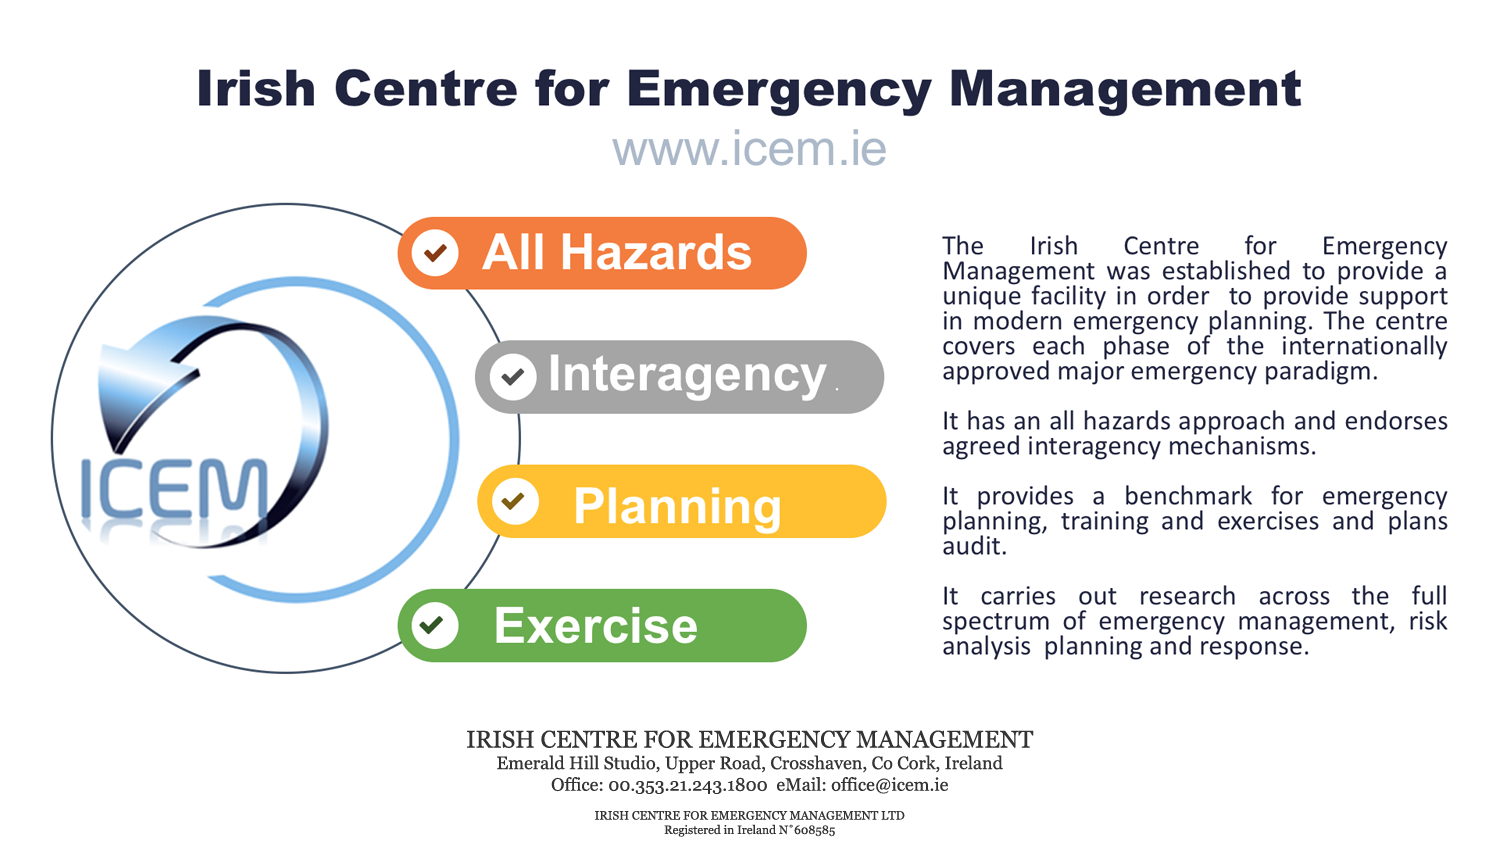 Irish Centre for Emergency Management